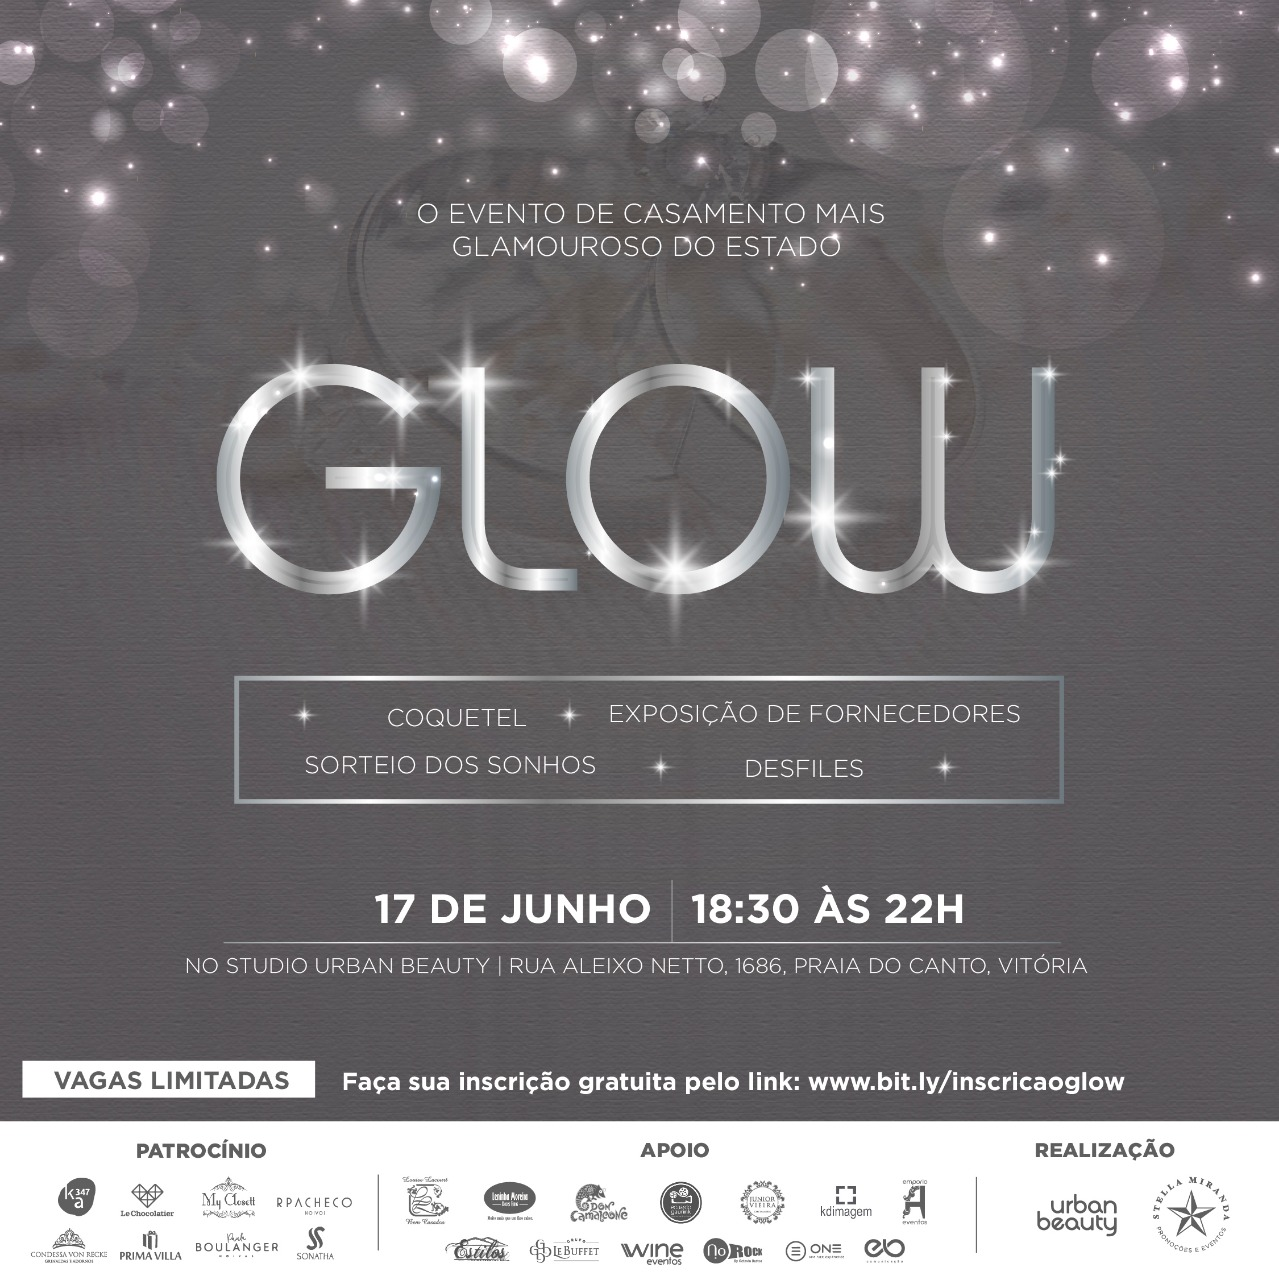 glow-o-evento-de-casamentos-mais-glamouroso-do-estado